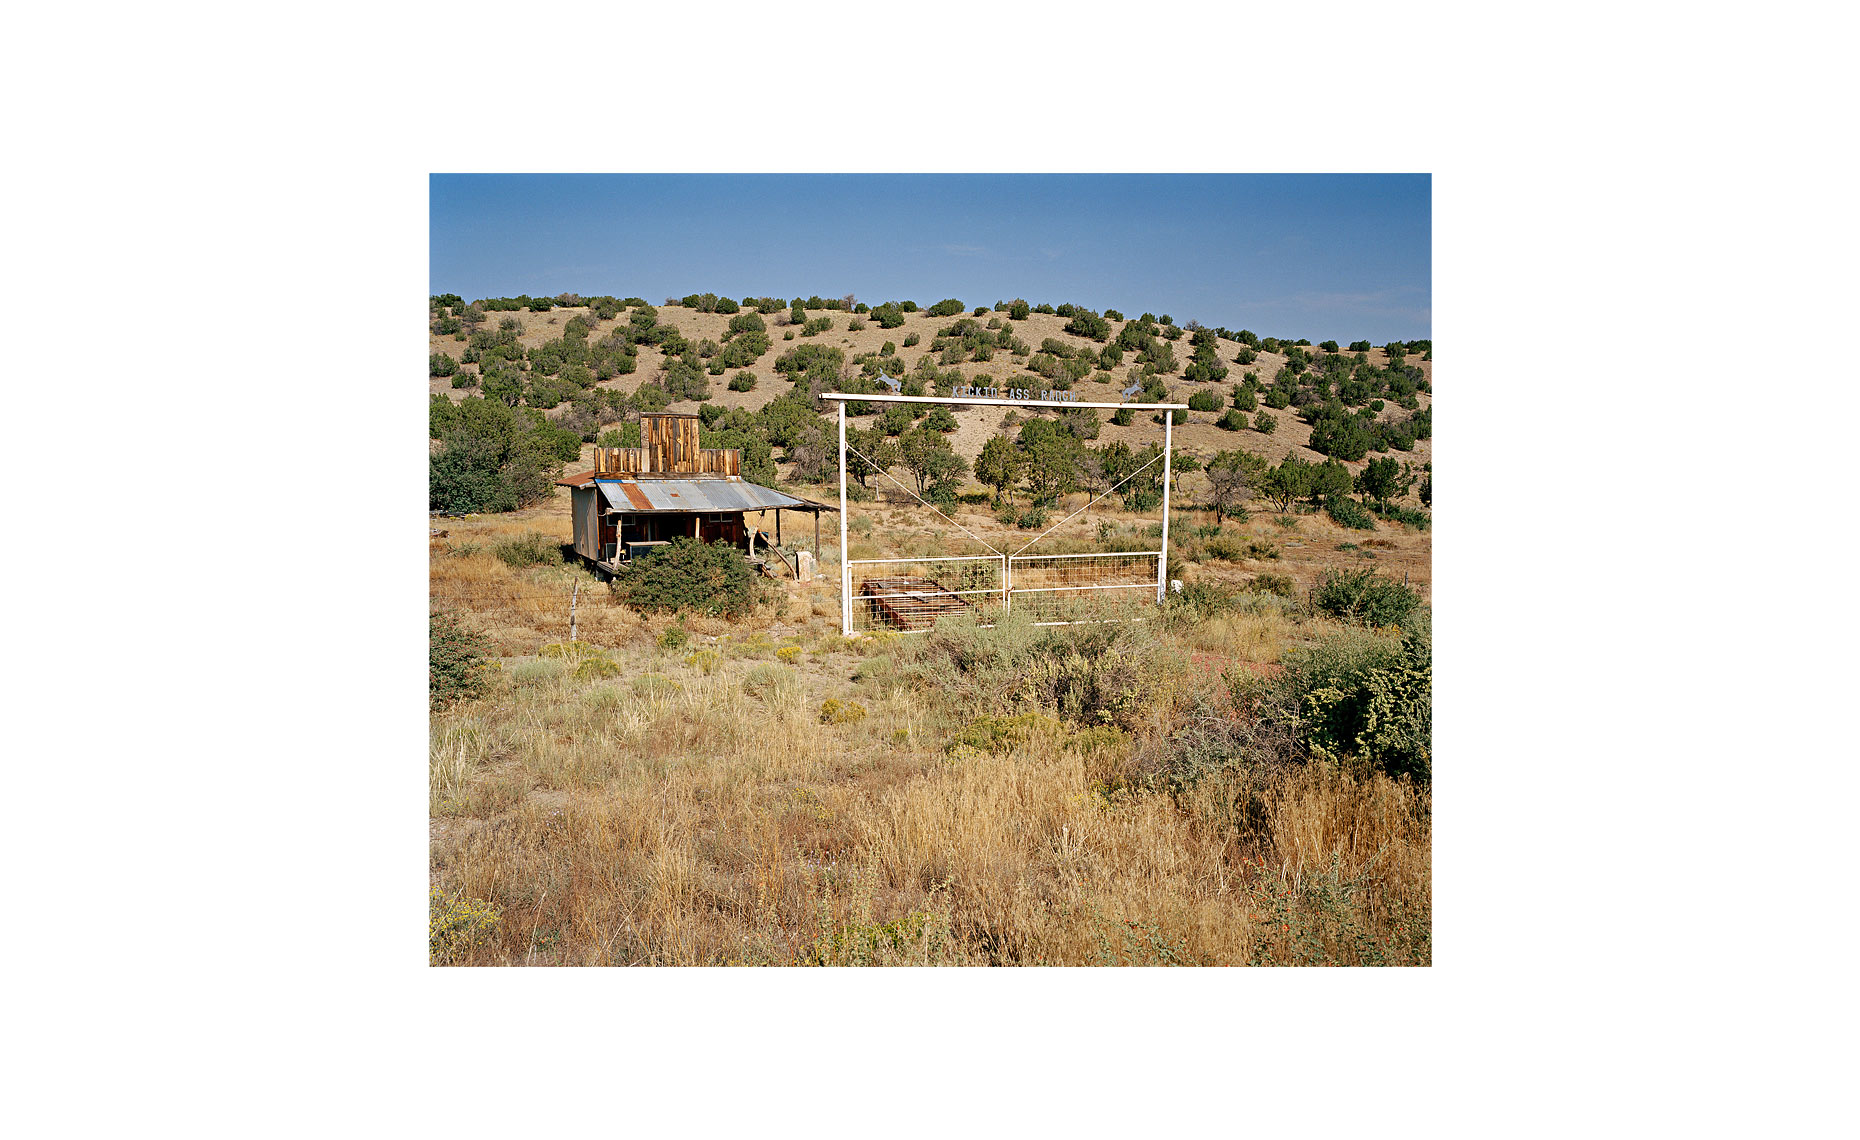 This Was What There Was | Kickin Ass Ranch. Madrid, New Mexico. September 2005